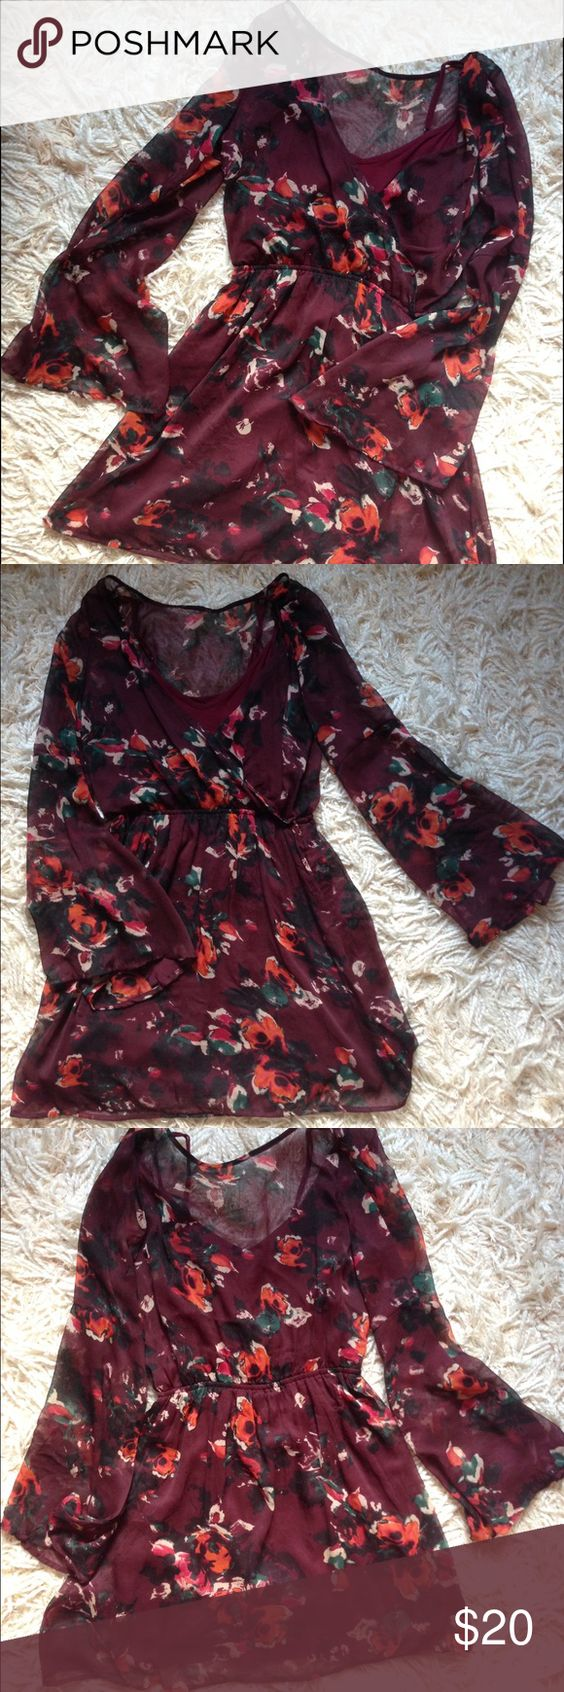 Abercrombie & Fitch flowery dress Maroon and multi color flowers. Very flowy with wide arms, would make for a great fall/spring dress! Abercrombie & Fitch Dresses